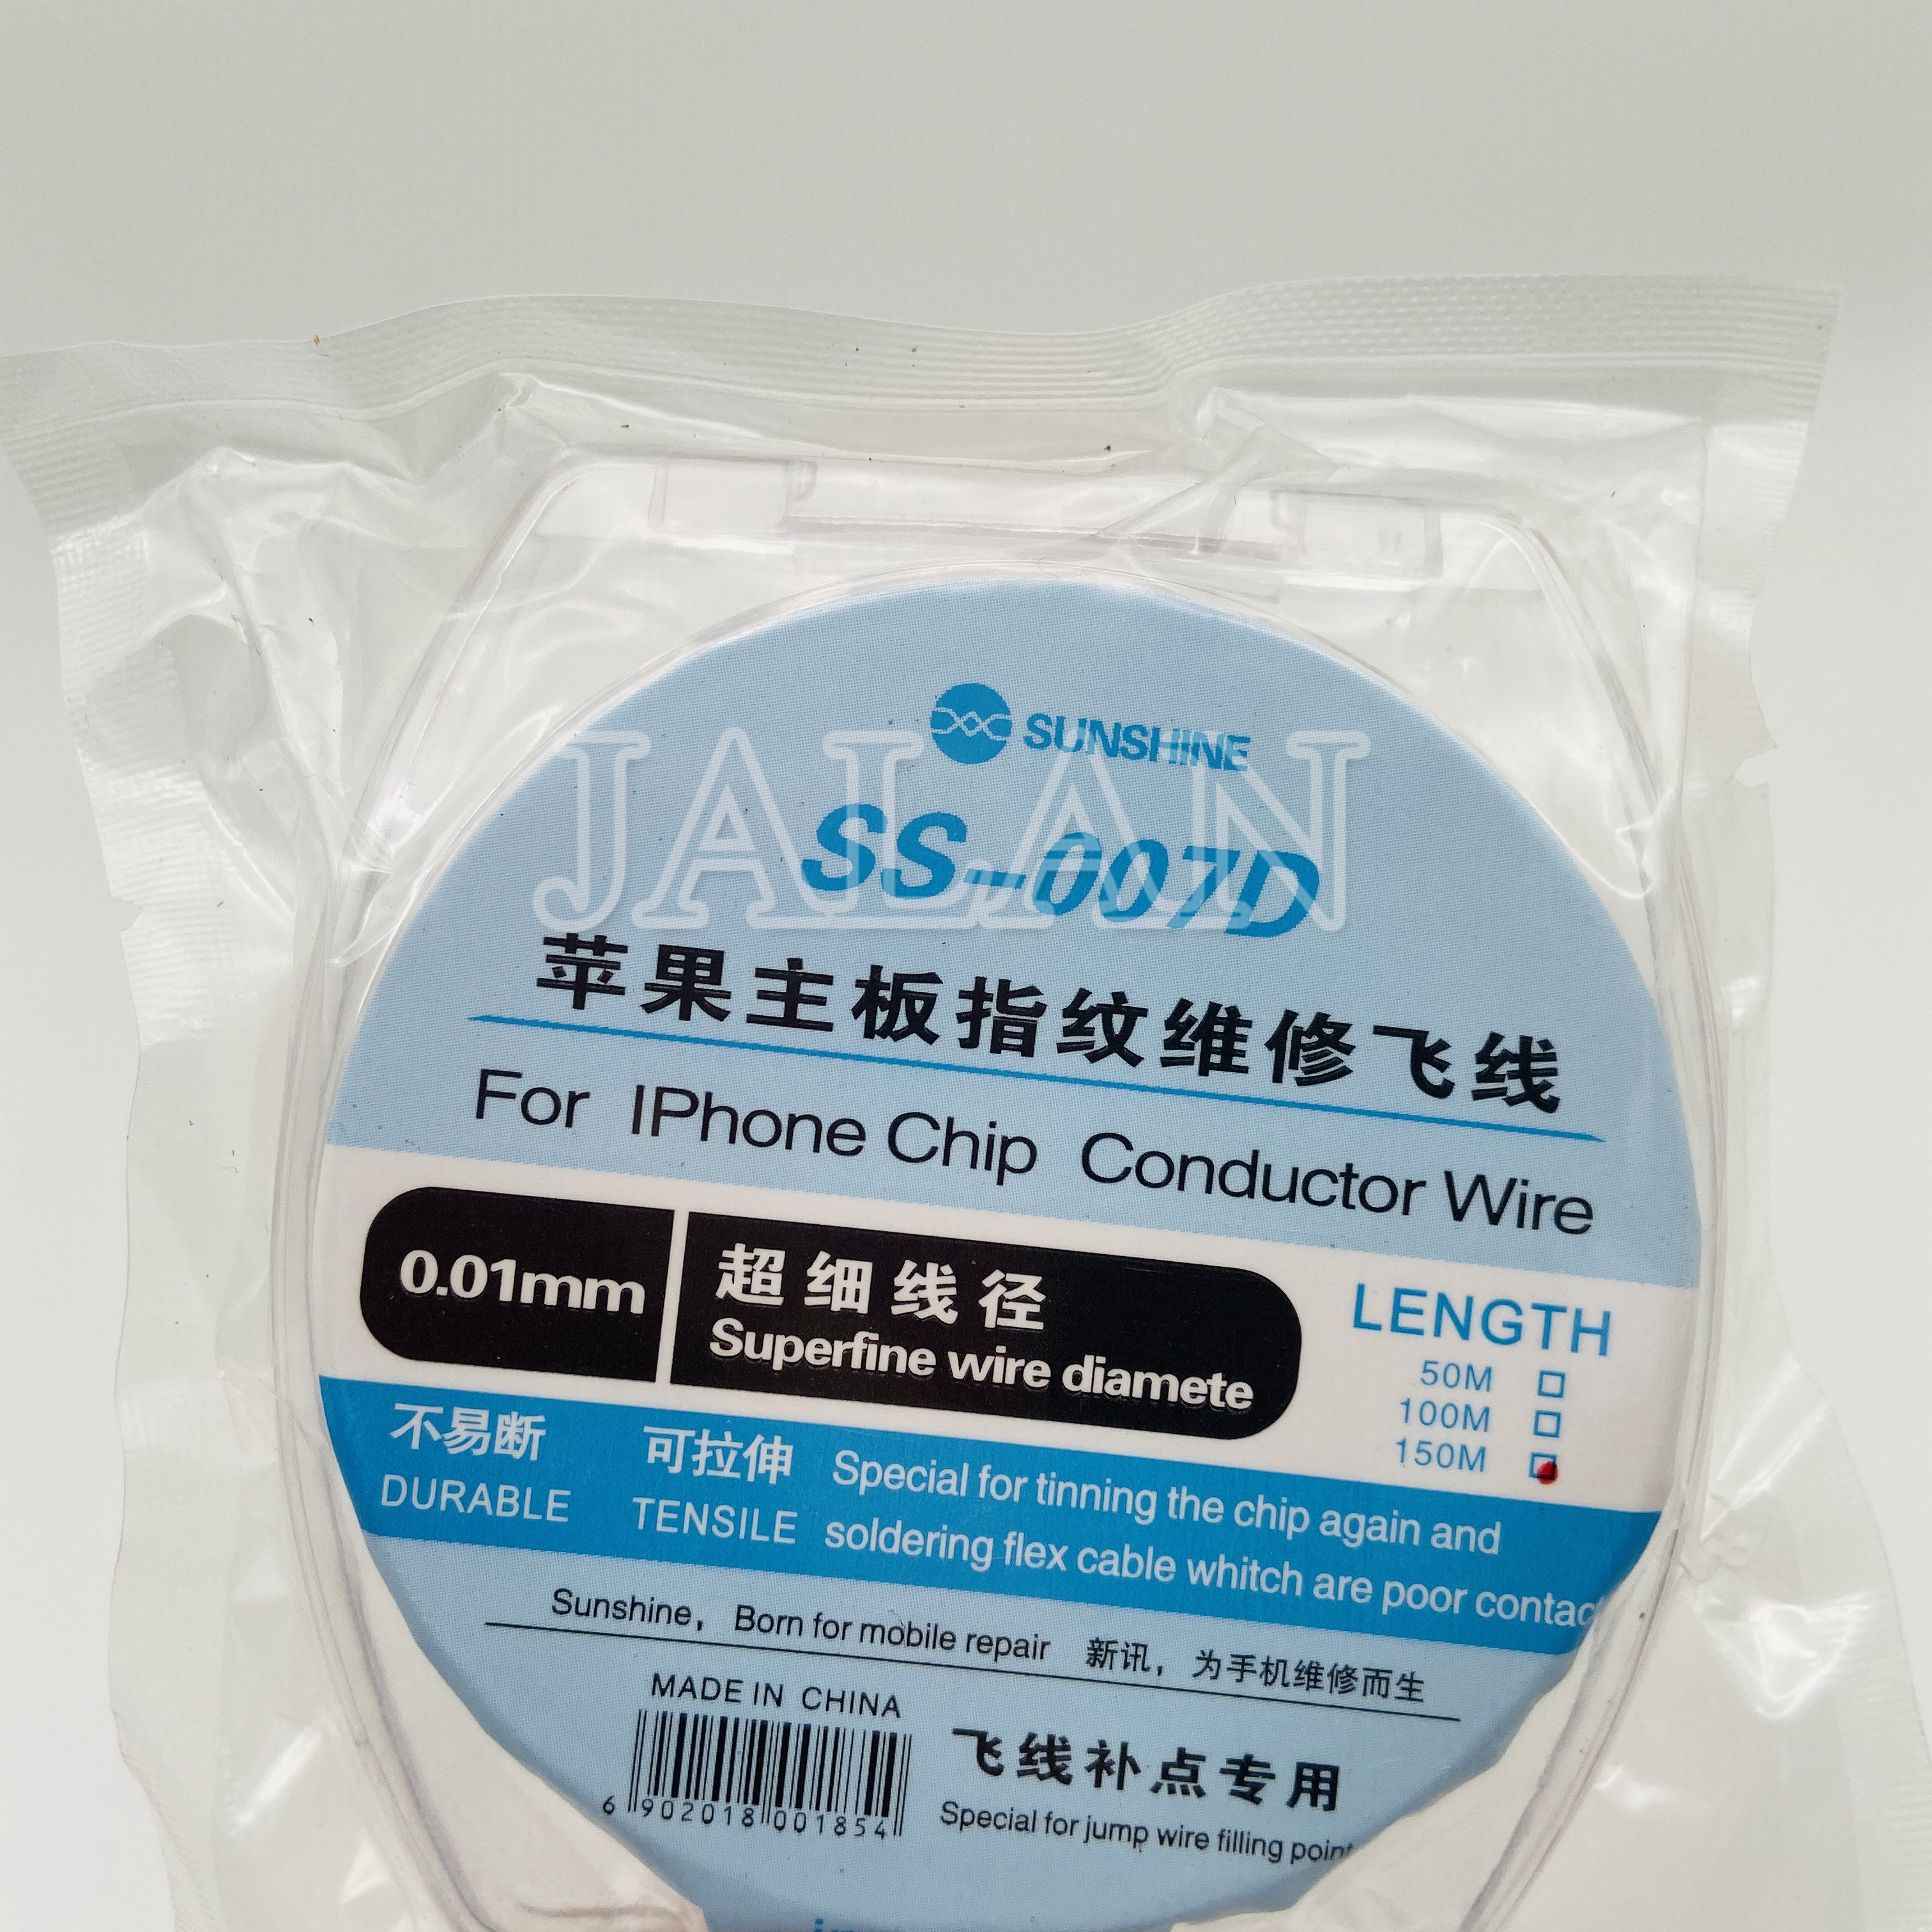 Sunshine SS-007D Superfine Insulated /& Durable Jumper Conductor Wire 0.01mm